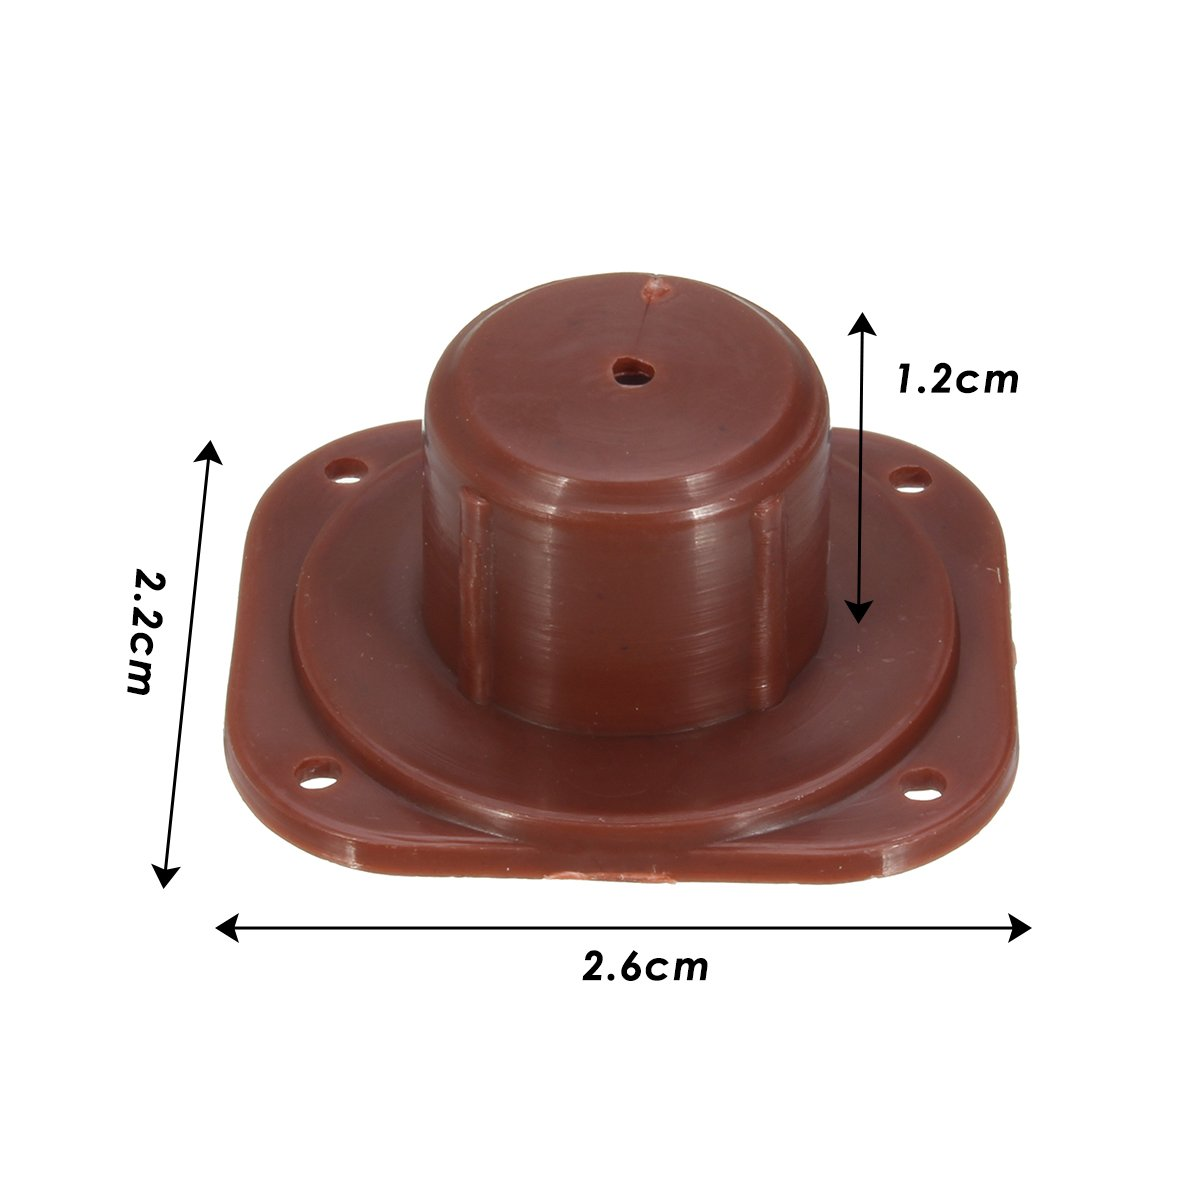 Janolia Rearing Cup kit System 100 Cell Cups Tool Set Beekeeping Catcher Box with Brown Cell Cups Cell Cup Holder Cell Bar Holder Hair Roller Cages